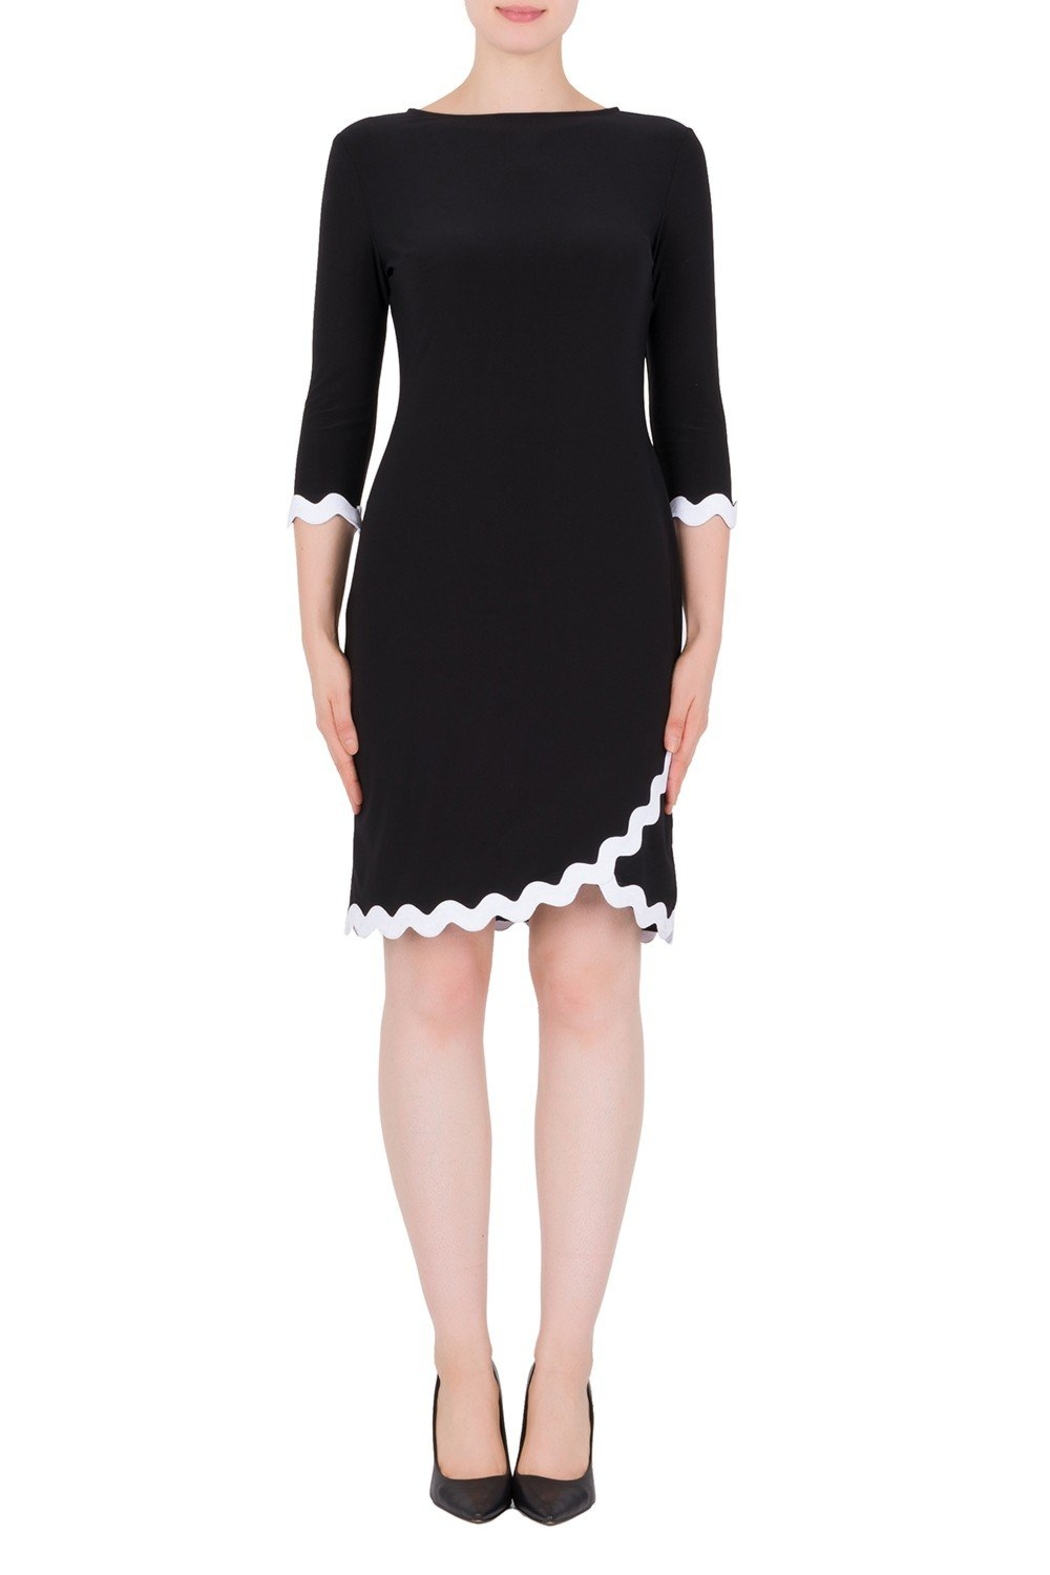 Joseph Ribkoff  Rack Time Dress - Front Cropped Image